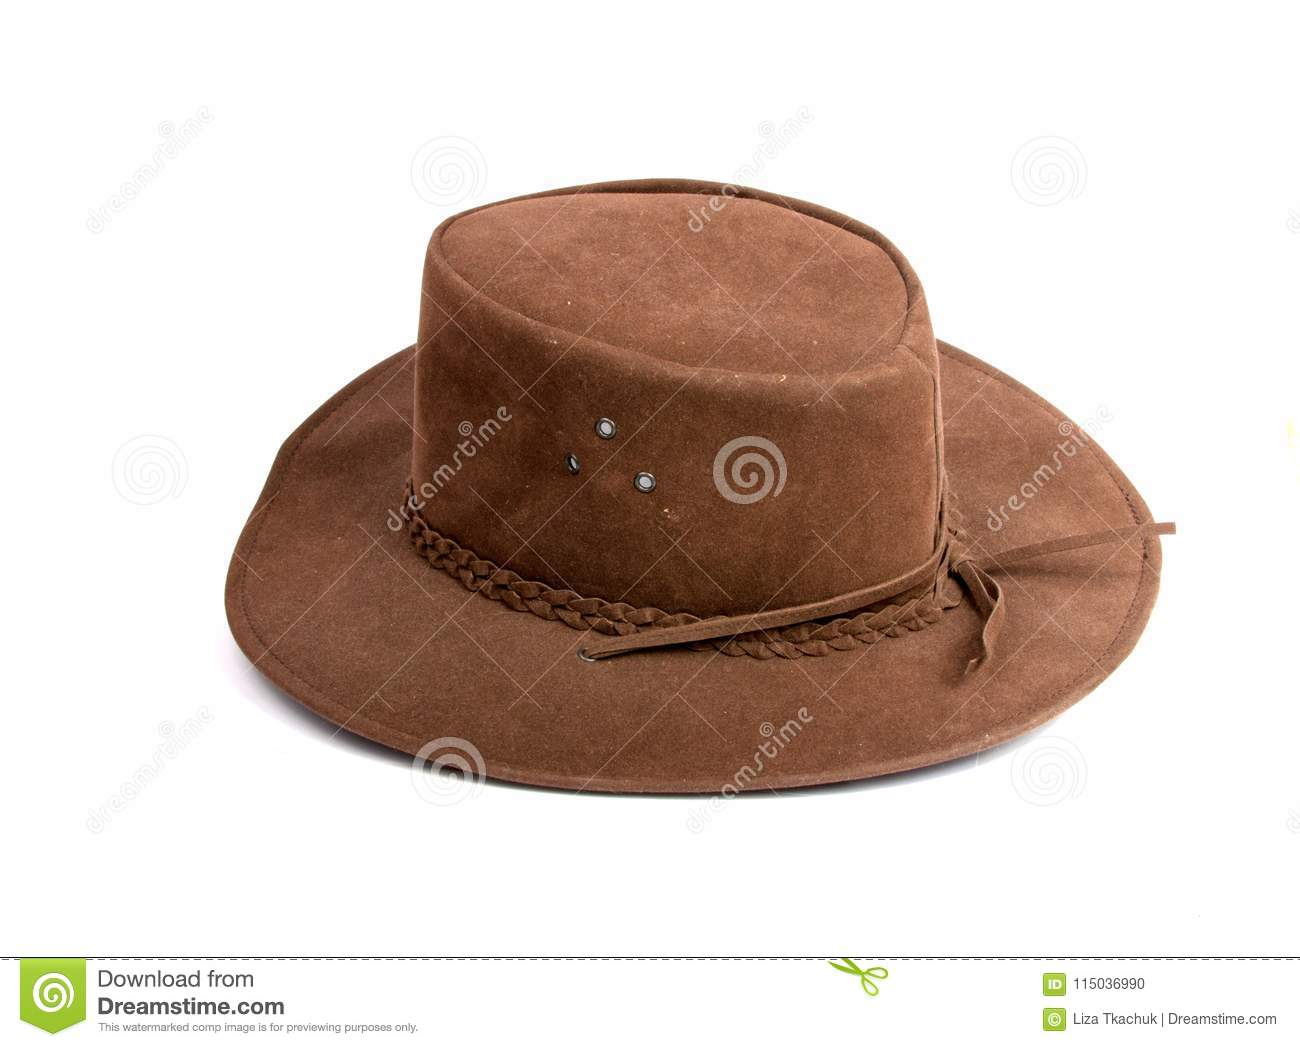 ee472f5f61a Brown cowboy hat isolated stock photo. Image of background - 115036990